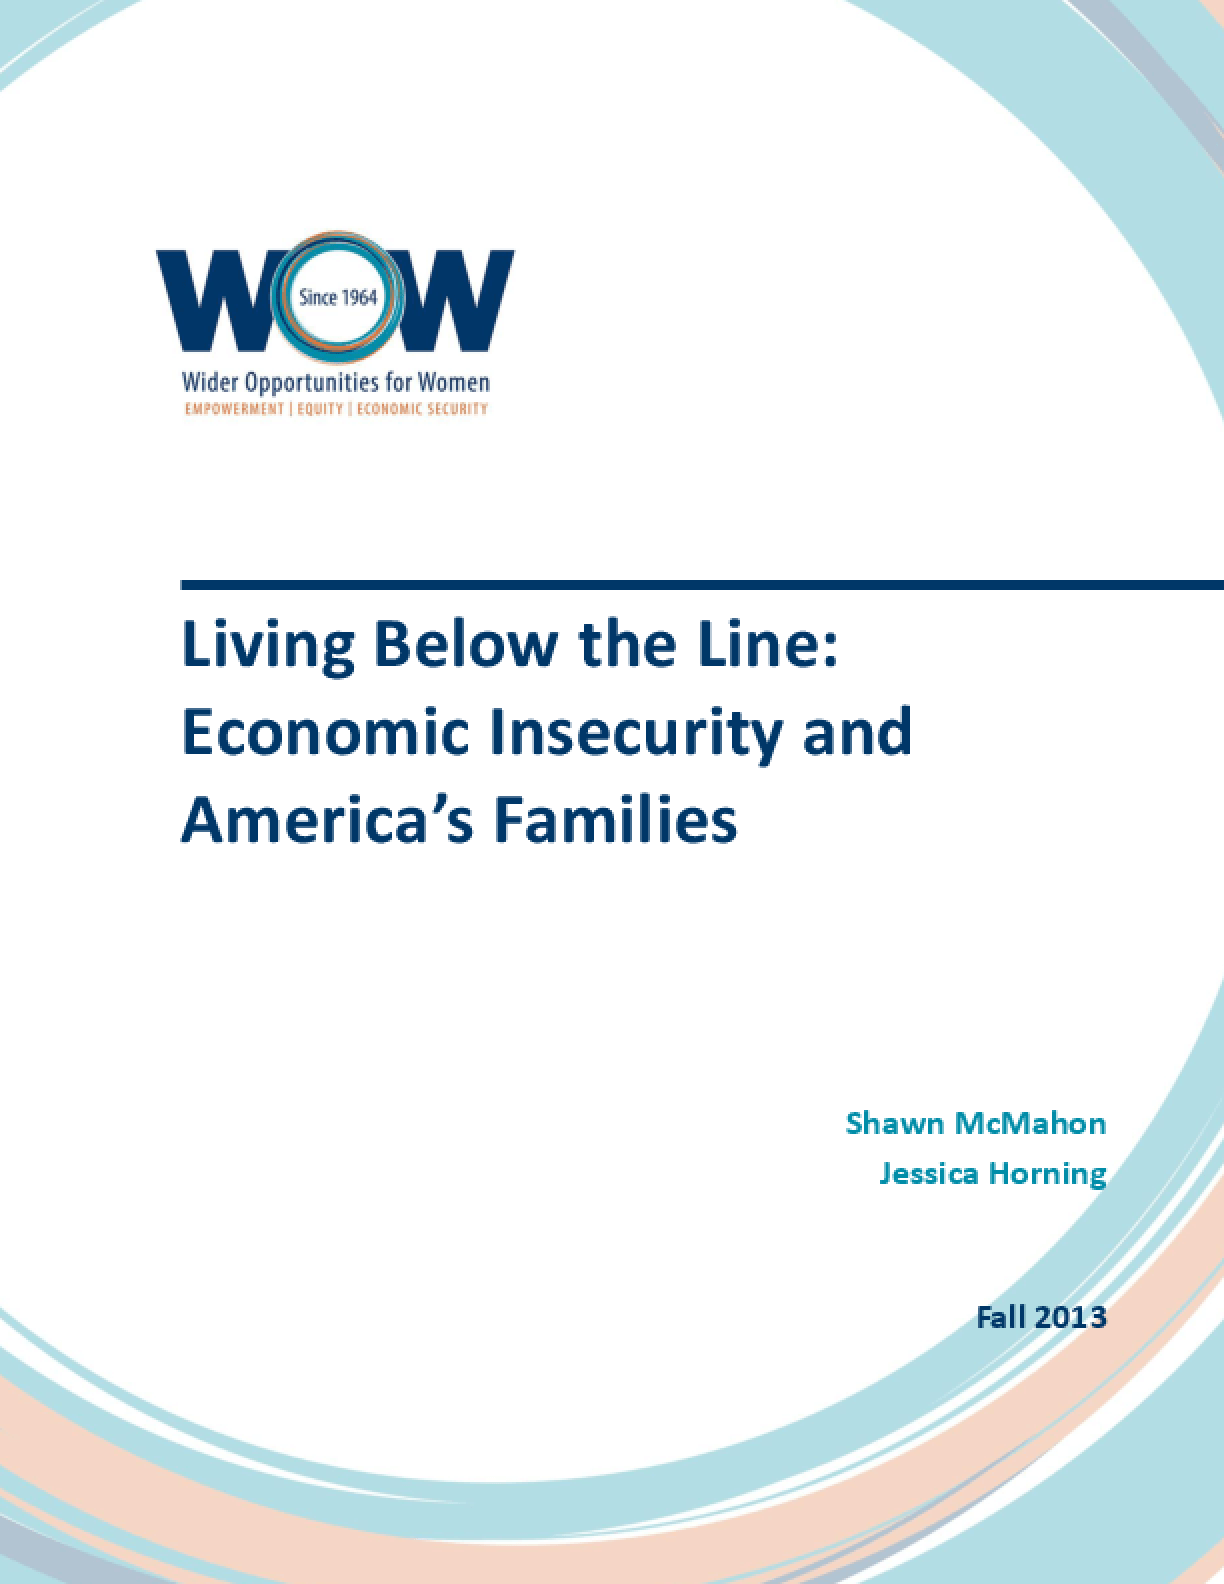 Living Below the Line: Economic Insecurity and America's Families